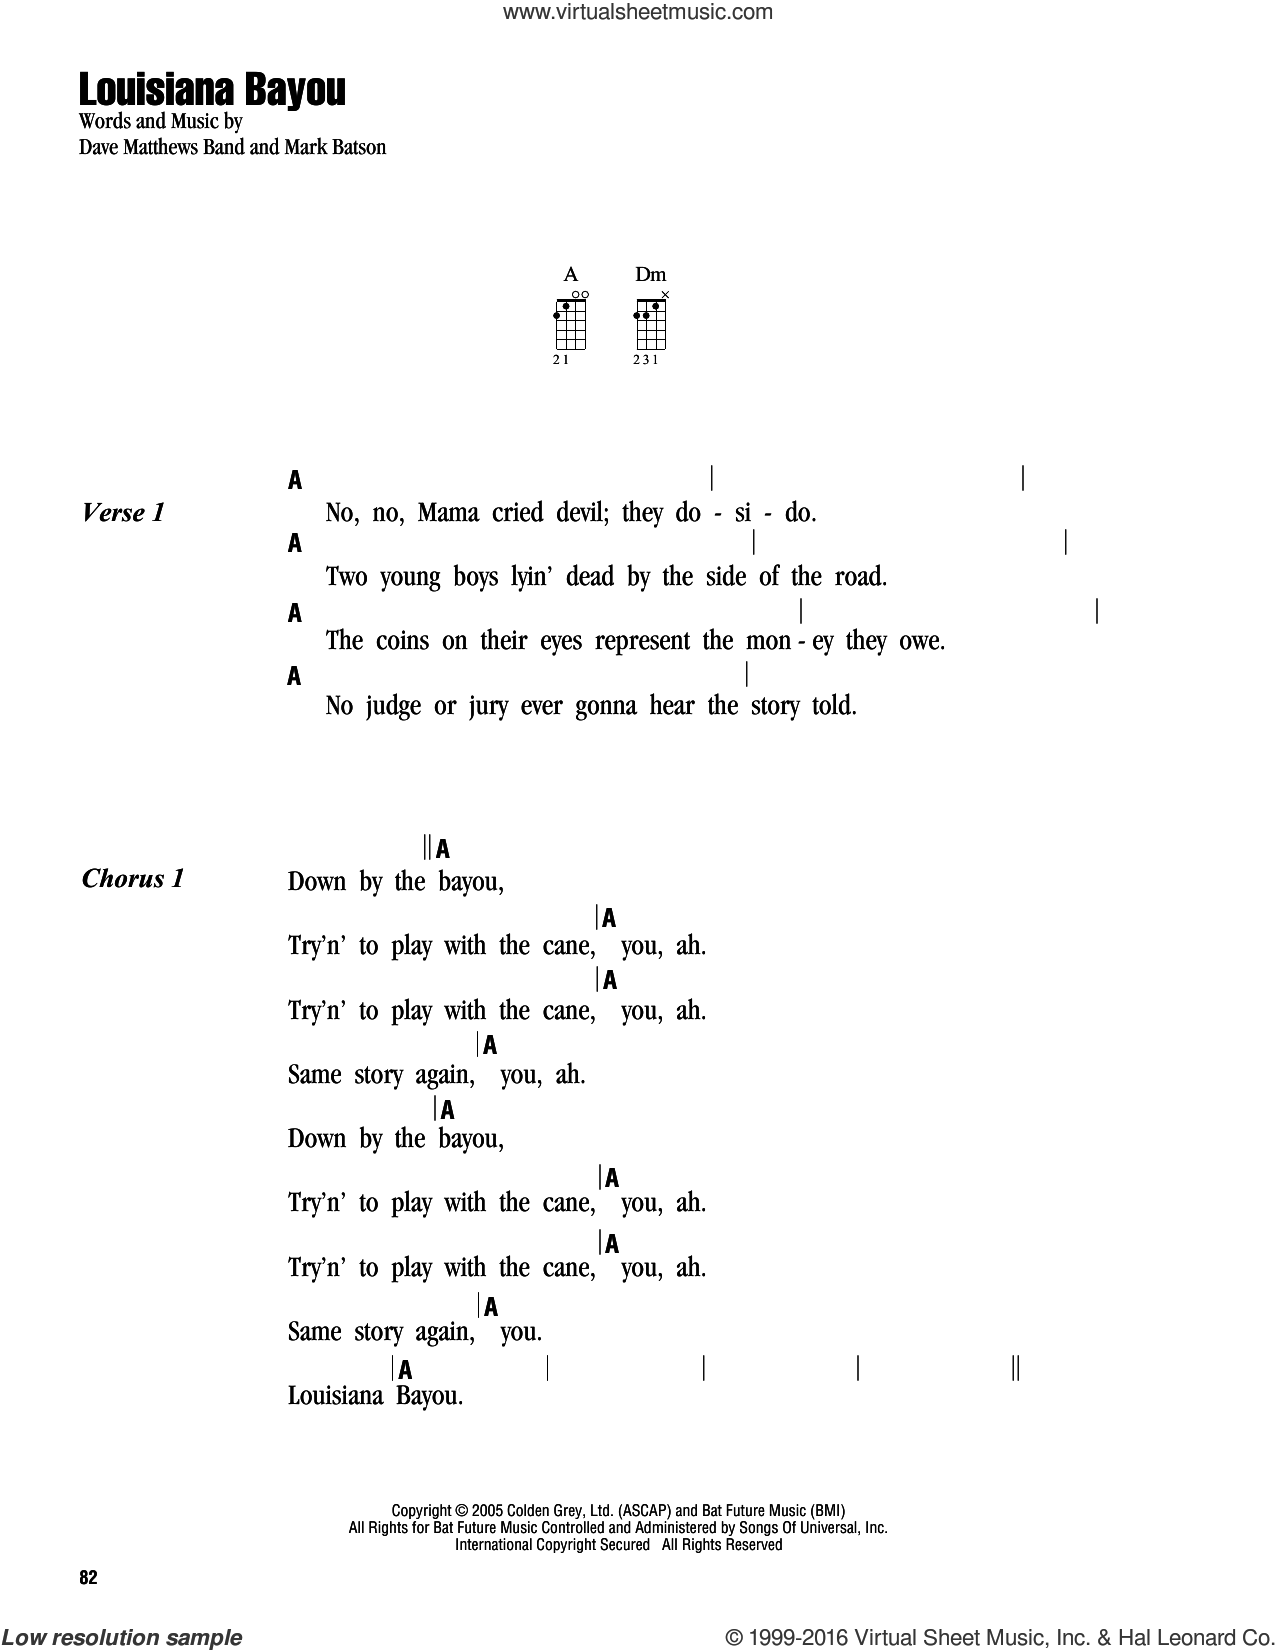 Louisiana Bayou sheet music for ukulele (chords) by Dave Matthews Band and Mark Batson, intermediate. Score Image Preview.